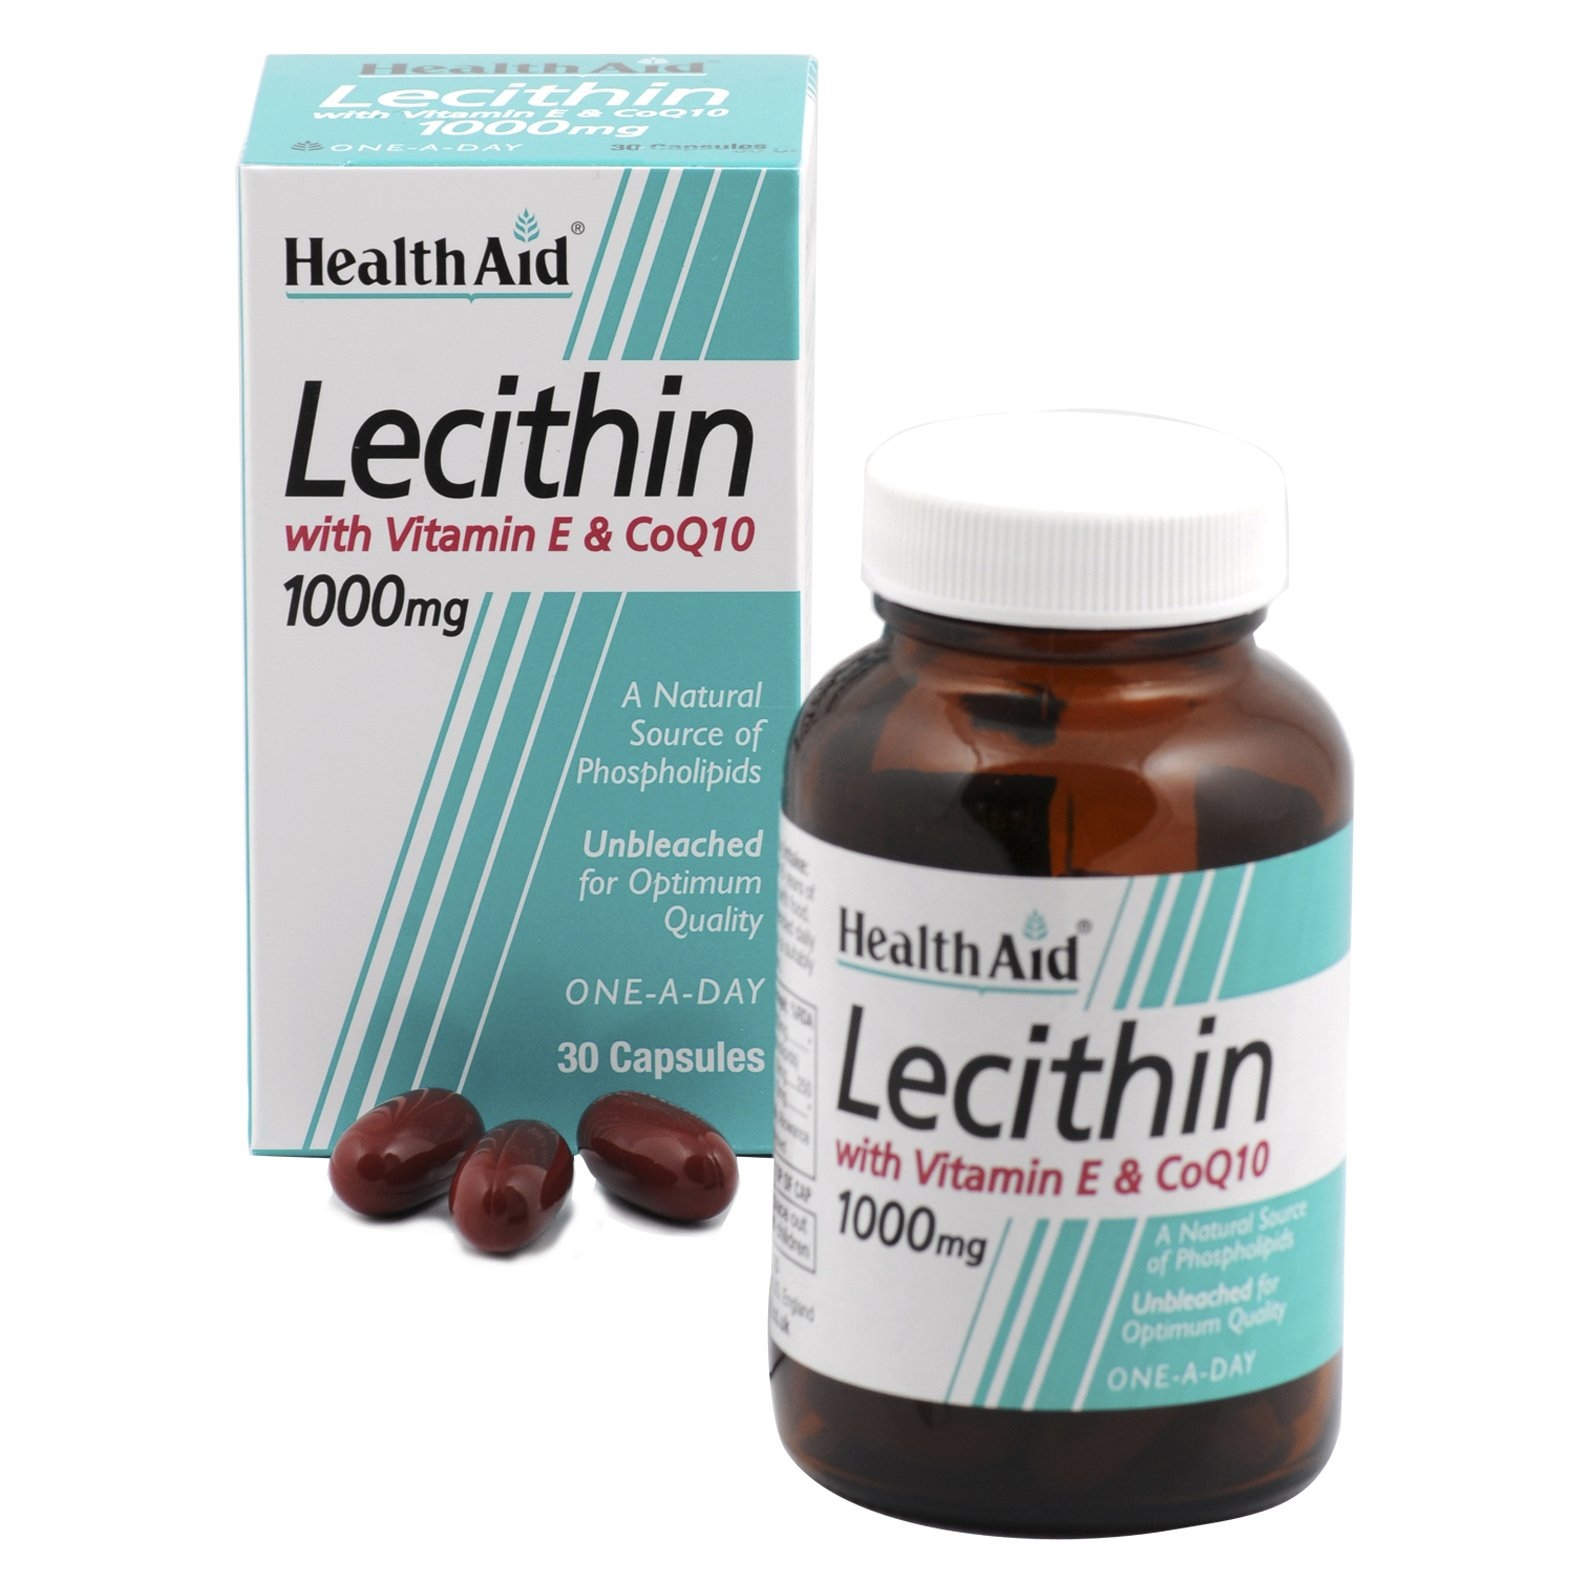 Health Aid Lecithin 1000Mg + Natural Vitamin E 45Iu + Coq 10 10Mg 30Caps